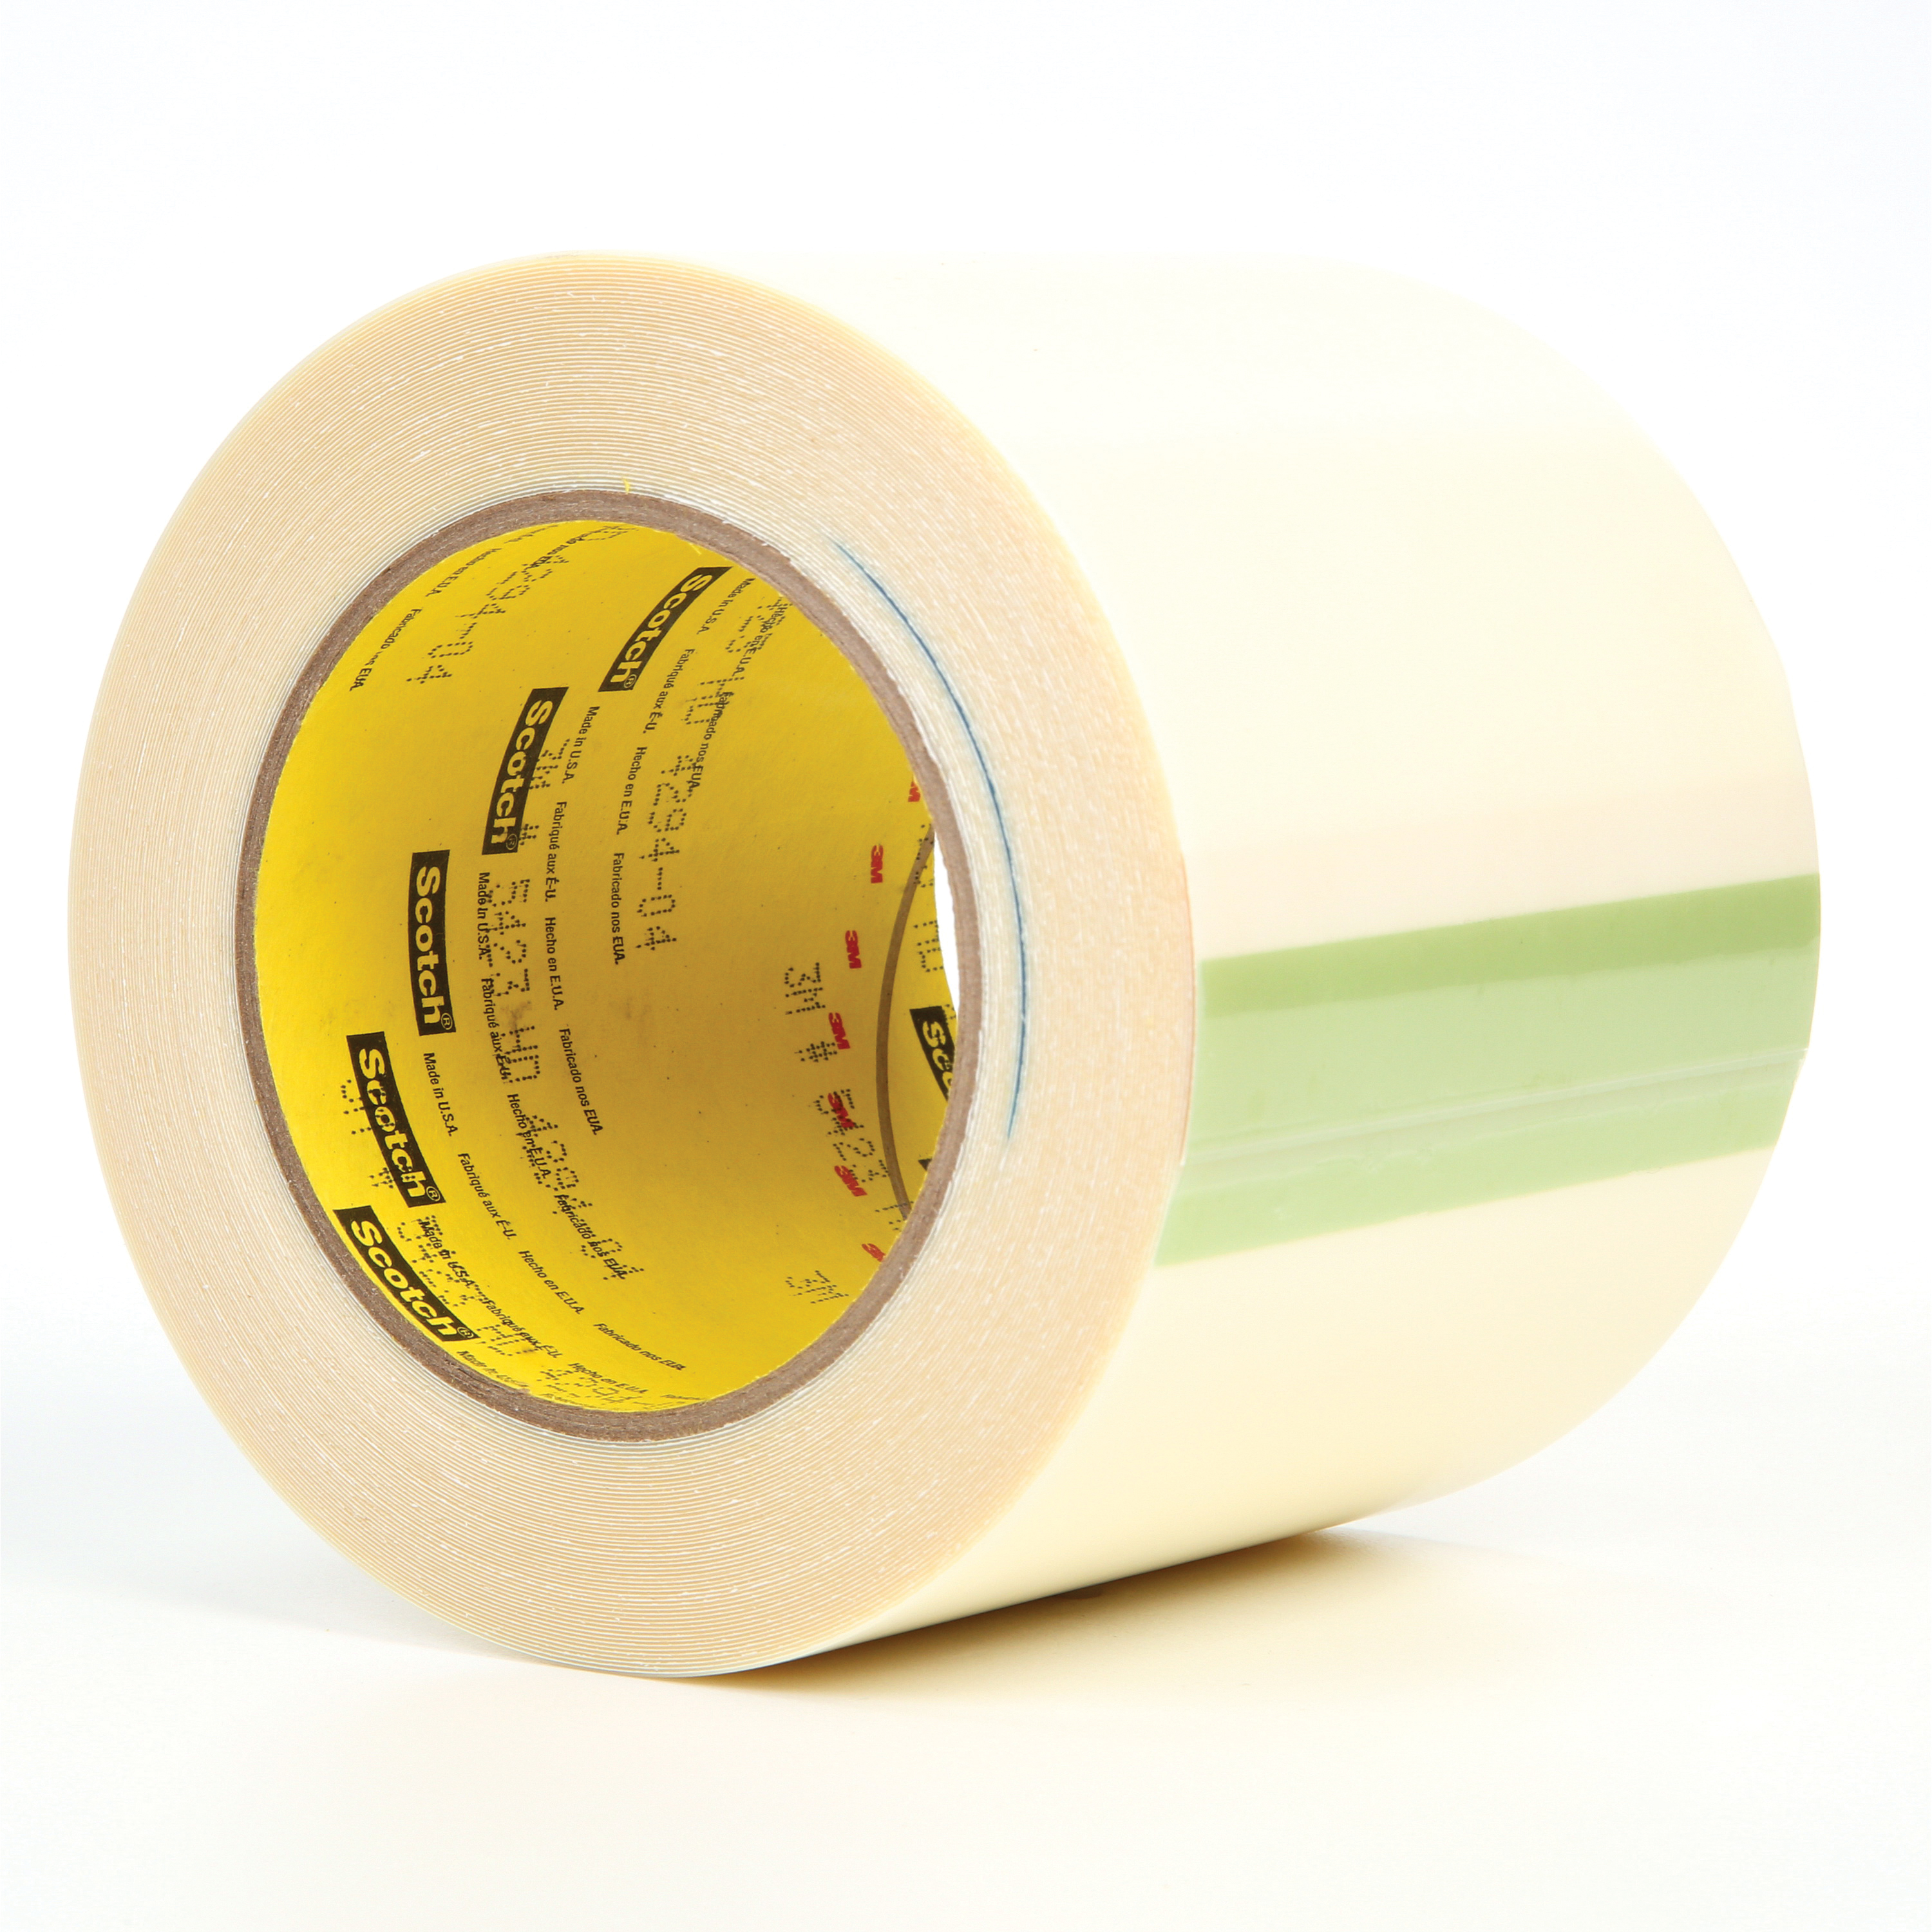 3M™ 021200-14457 Film Tape, 18 yd L x 4 in W, 11.7 mil THK, Rubber Adhesive, UHMWP Backing, Transparent